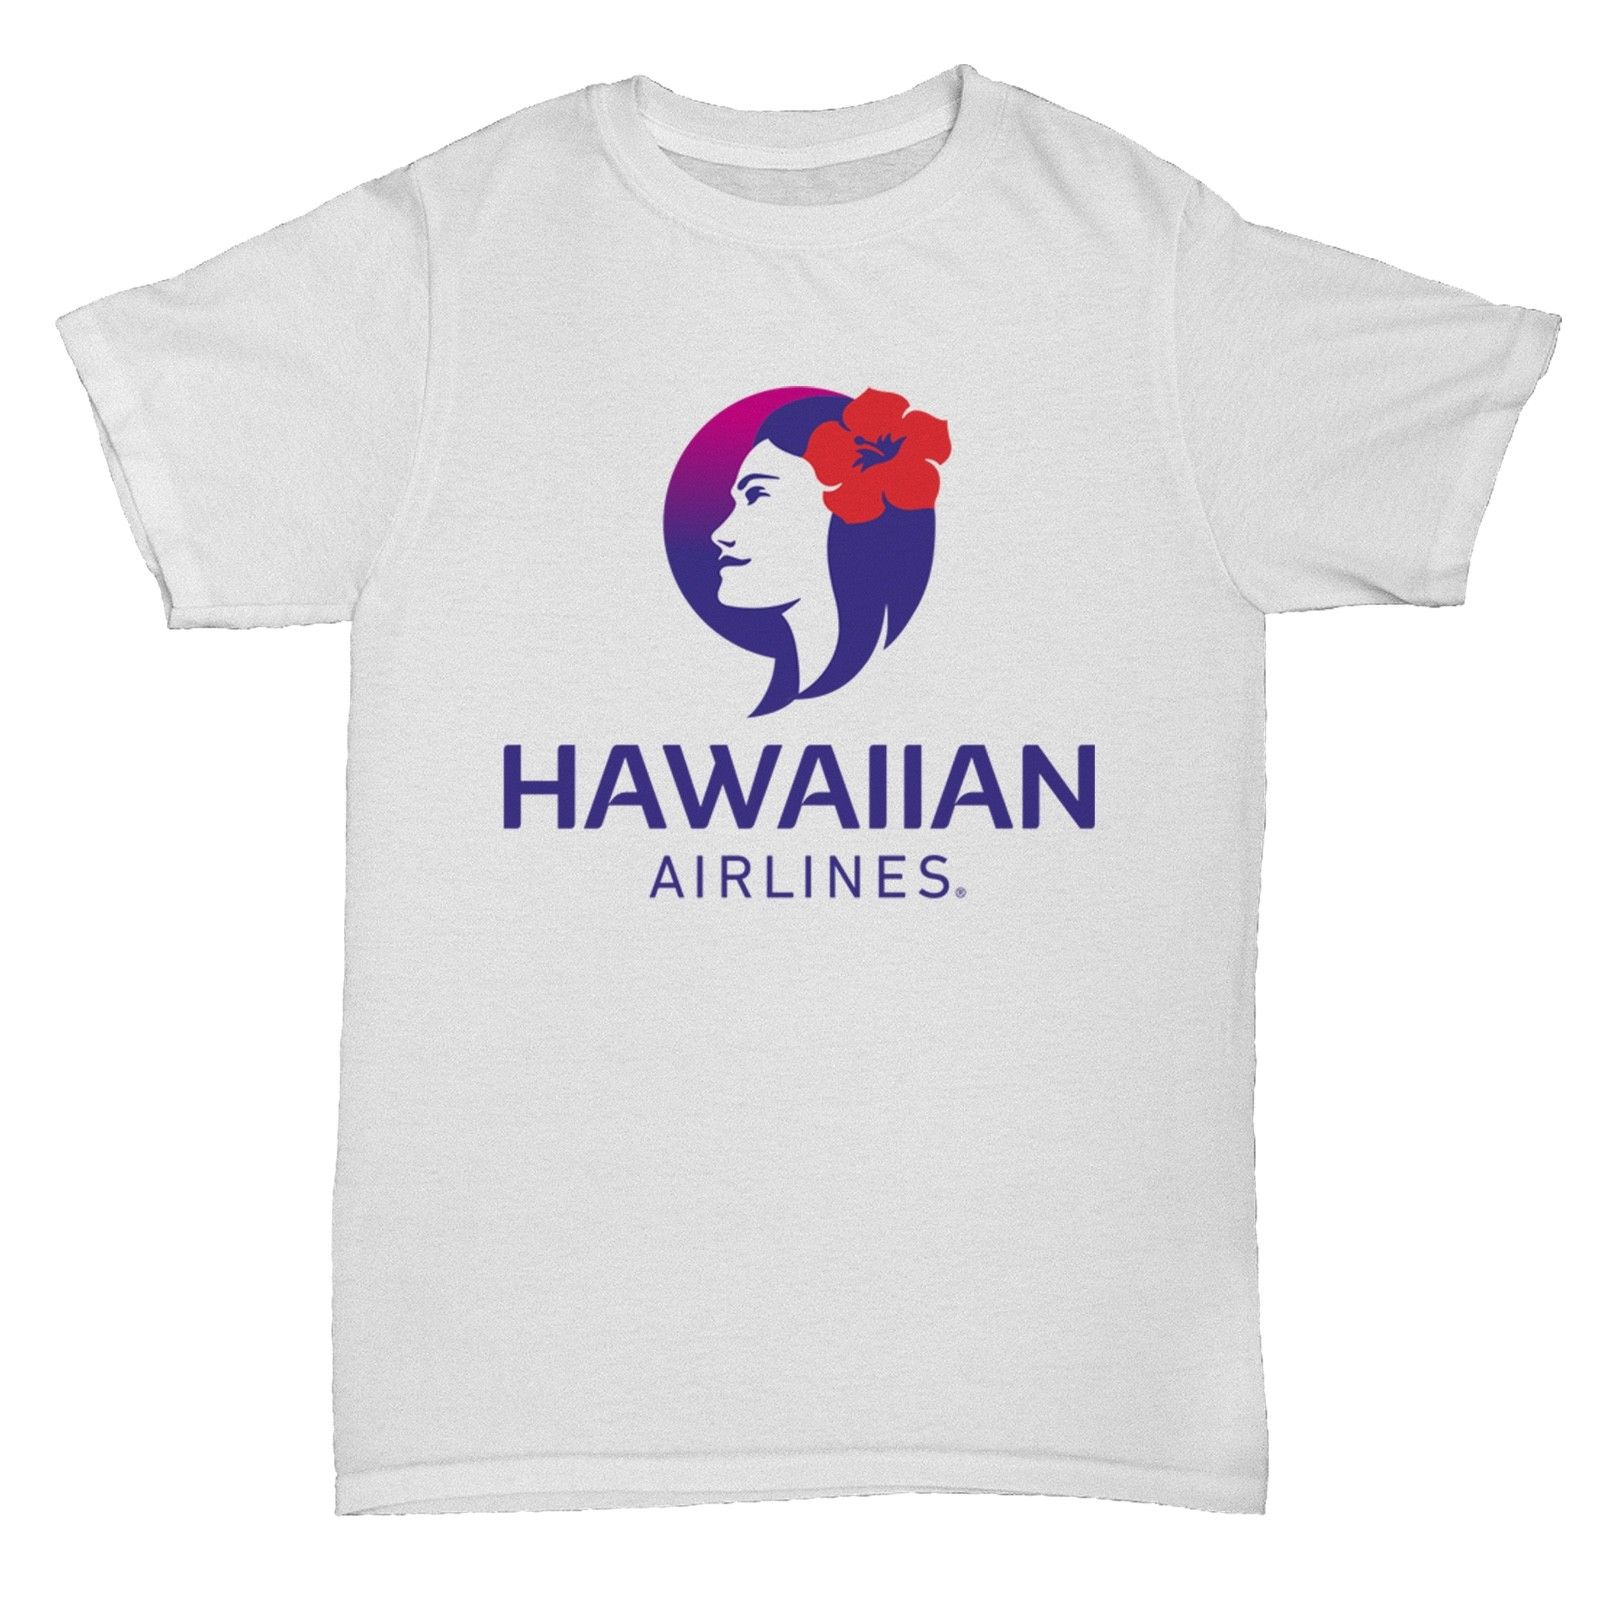 HAWAIIAN AIRLINES RETRO AEROPLANE BOAC PAN AM T SHIRT O Neck Shirt Plus Size T-Shirt O-Neck Stylish Casual Printed Tee